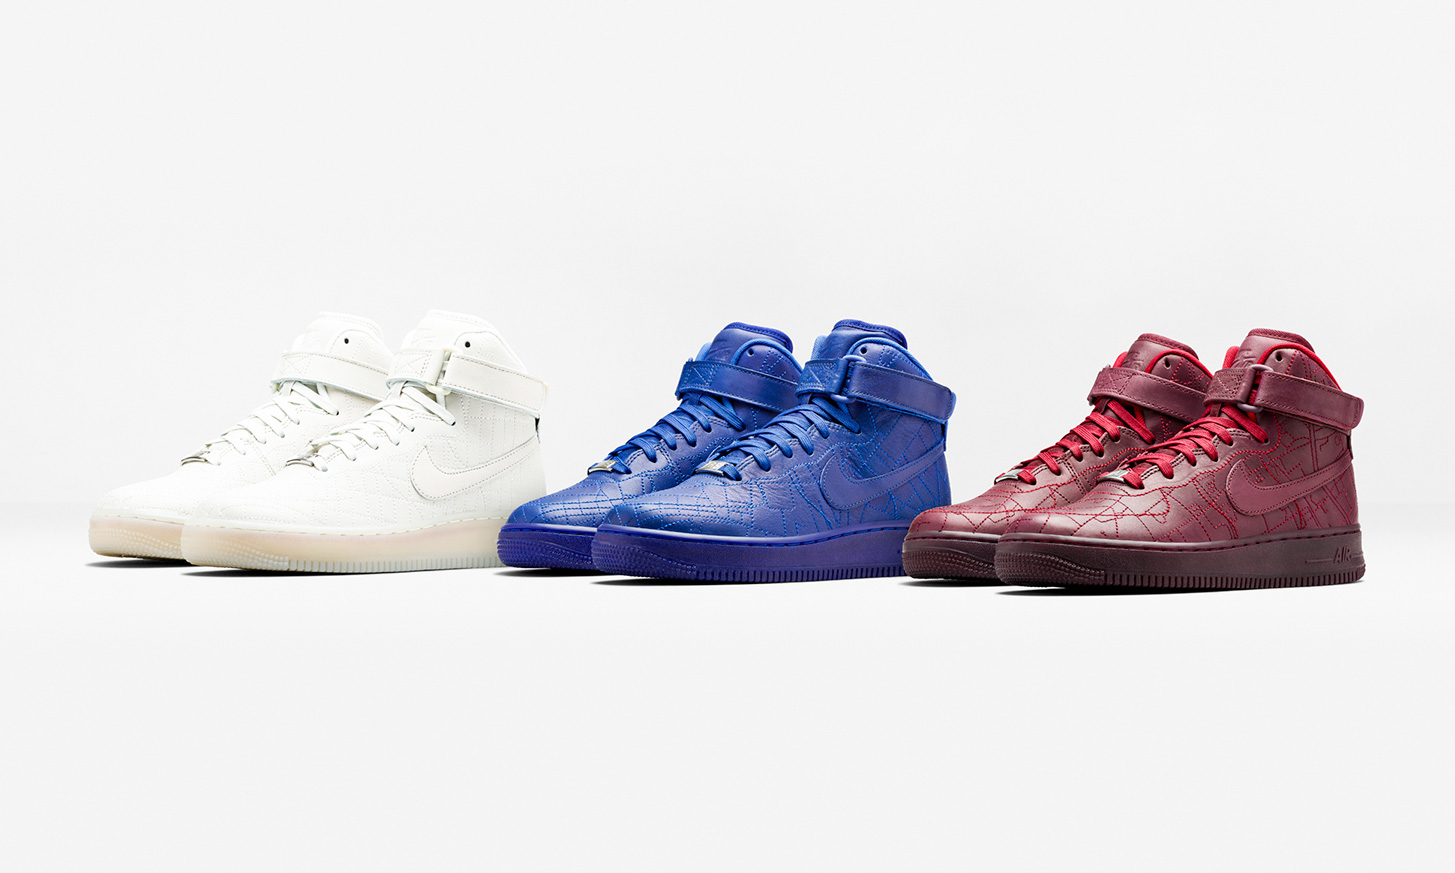 681dad81d chic Nike Sportswear Holiday 2014 City Collection Highsnobiety - www ...